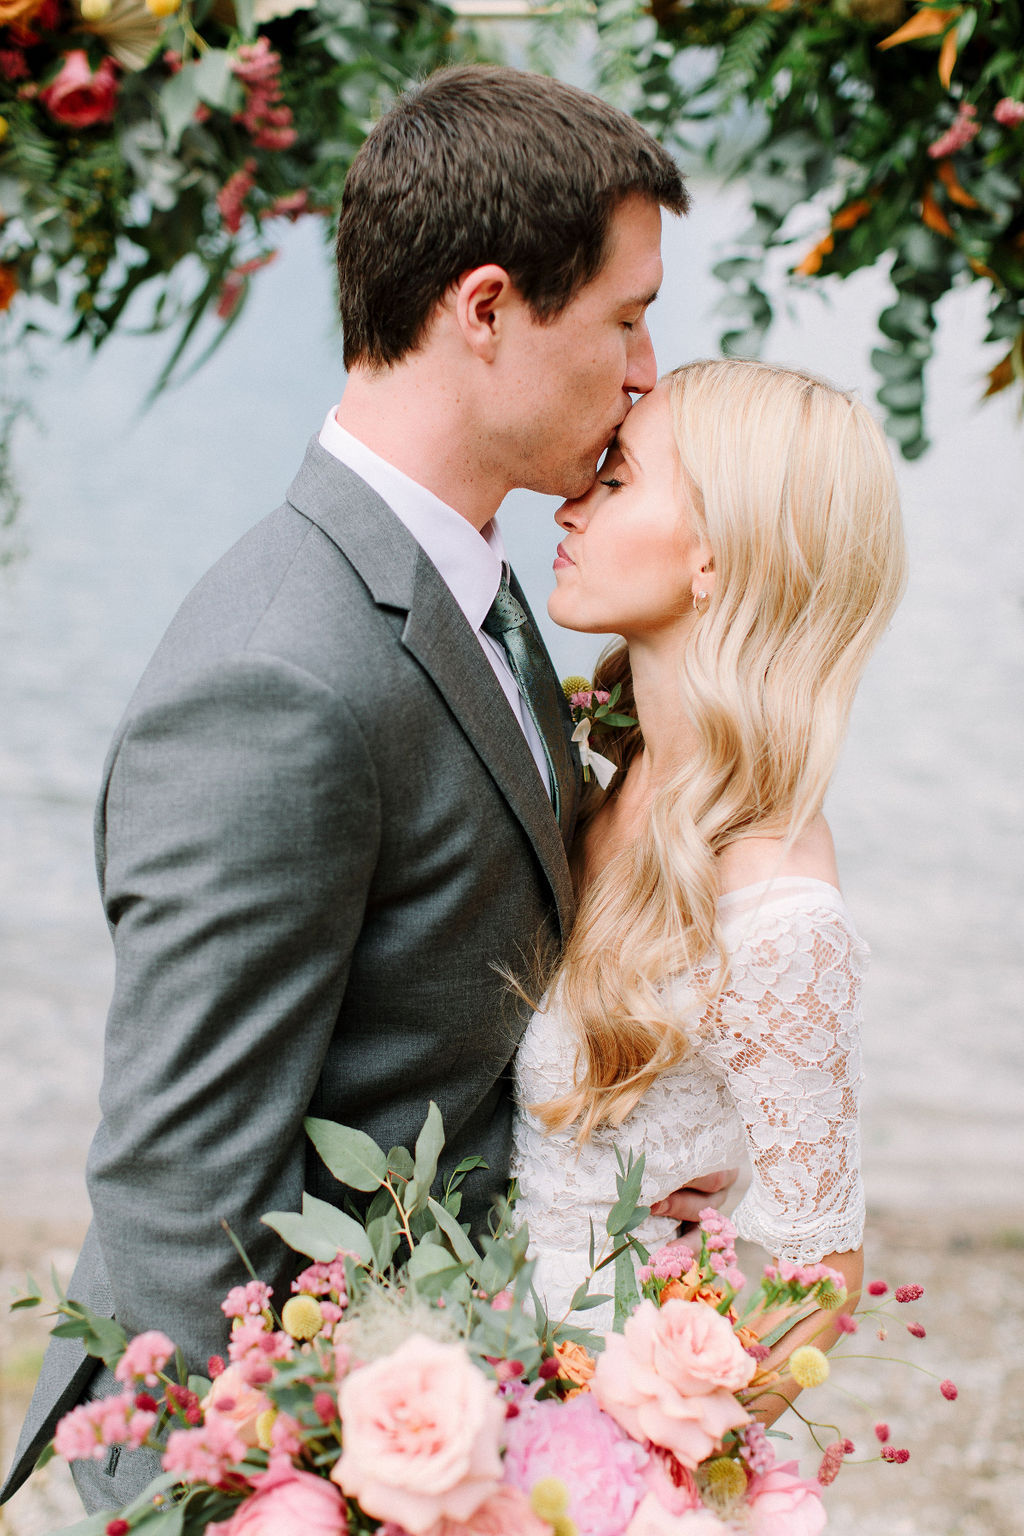 groom kissing bride after their elopement cermony